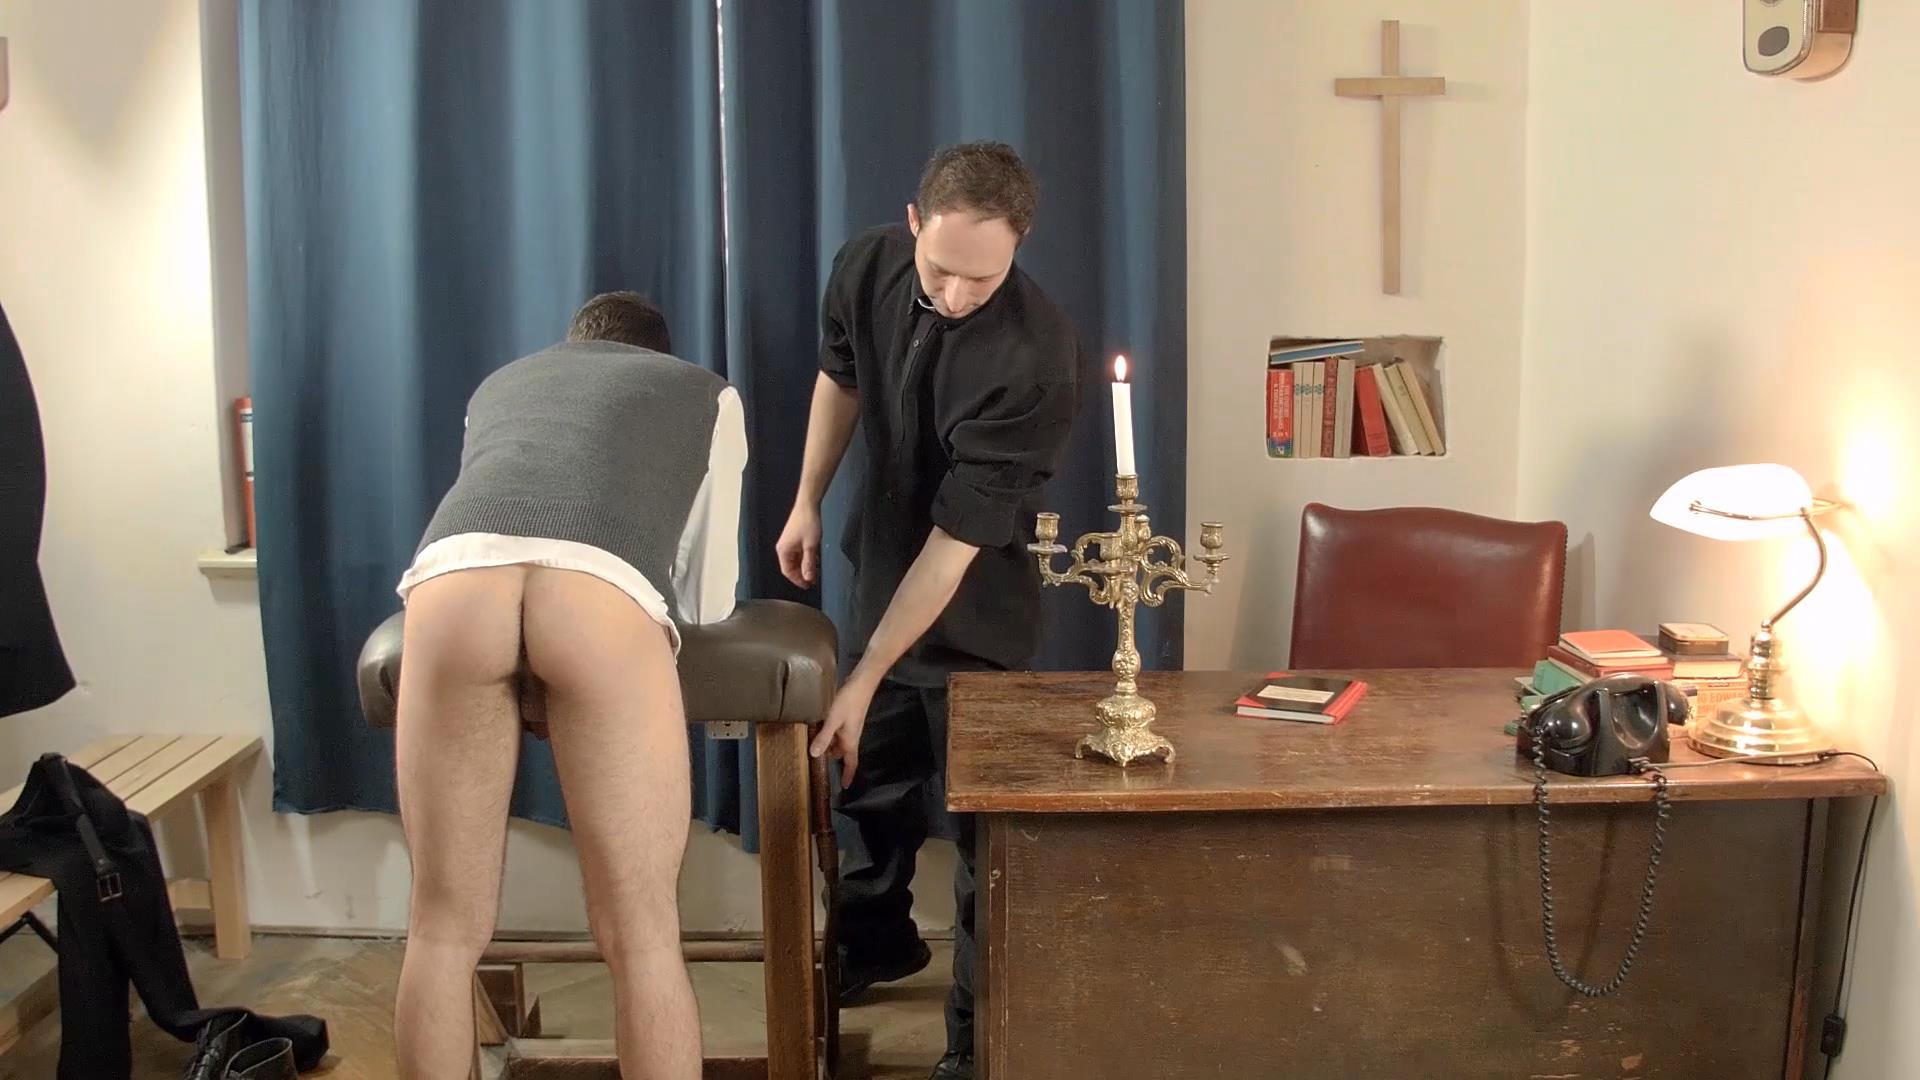 Bareback Me Daddy Oscar Hart Priest Fucks Bareback Amateur Gay Porn 02 College Boy Gets Fucked Bareback By An Older Priest With A Big Uncut Cock